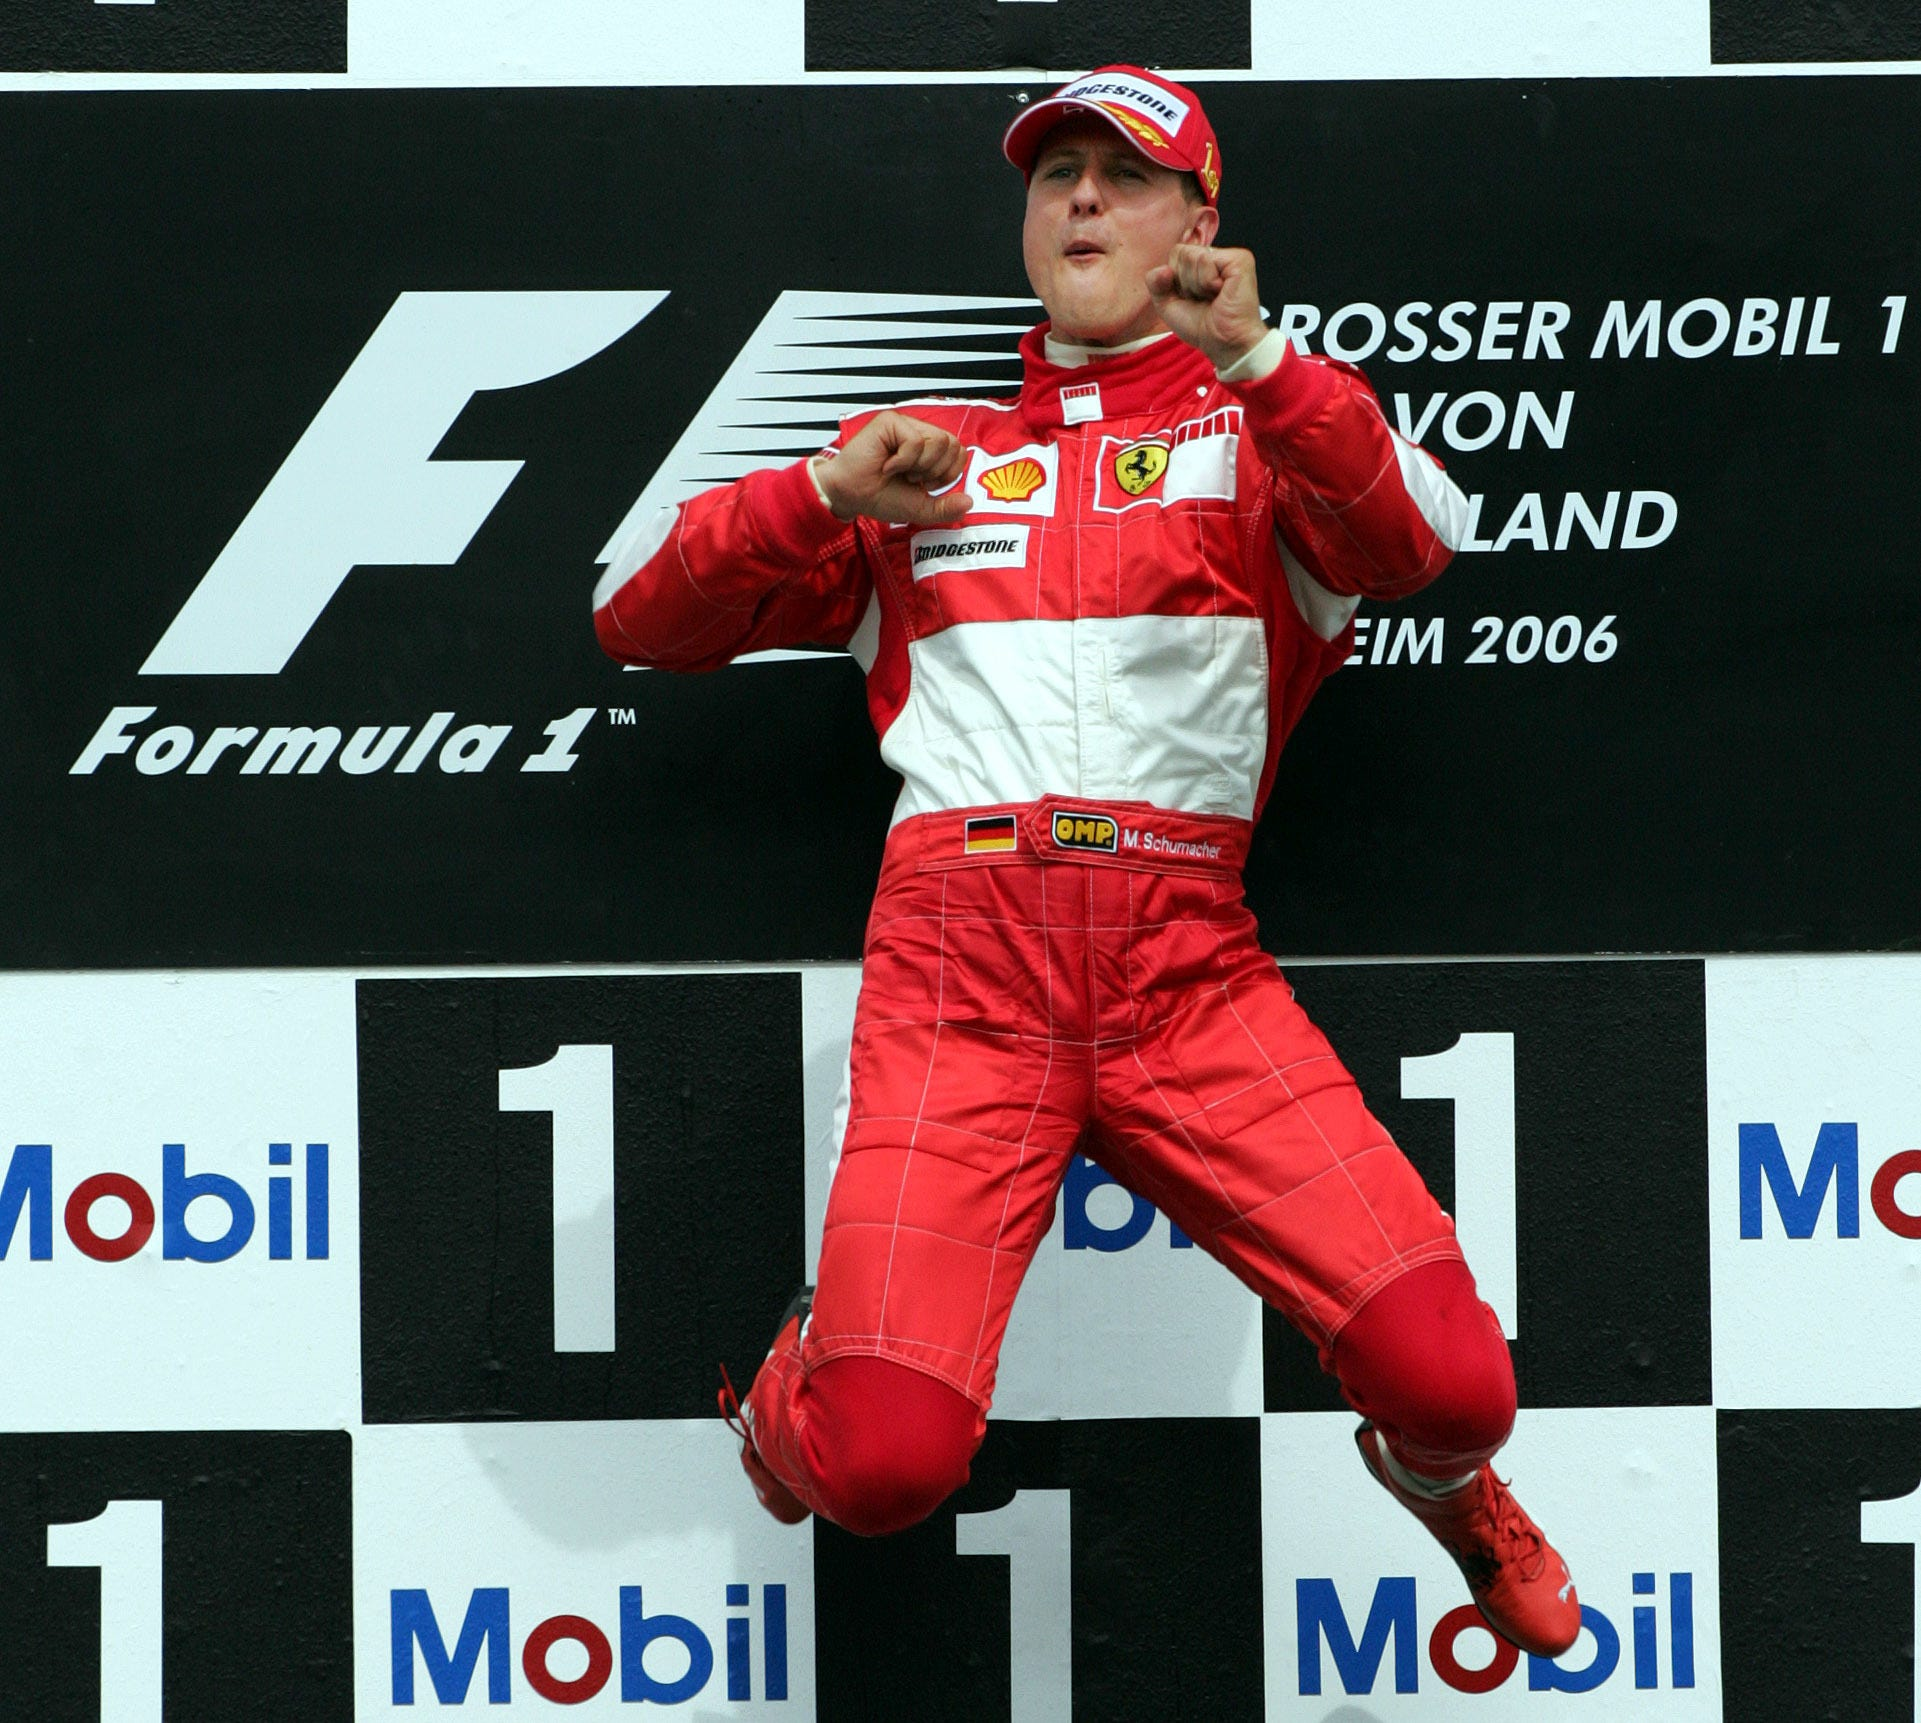 Personal life of Michael Schumacher and favorite hobbies 91